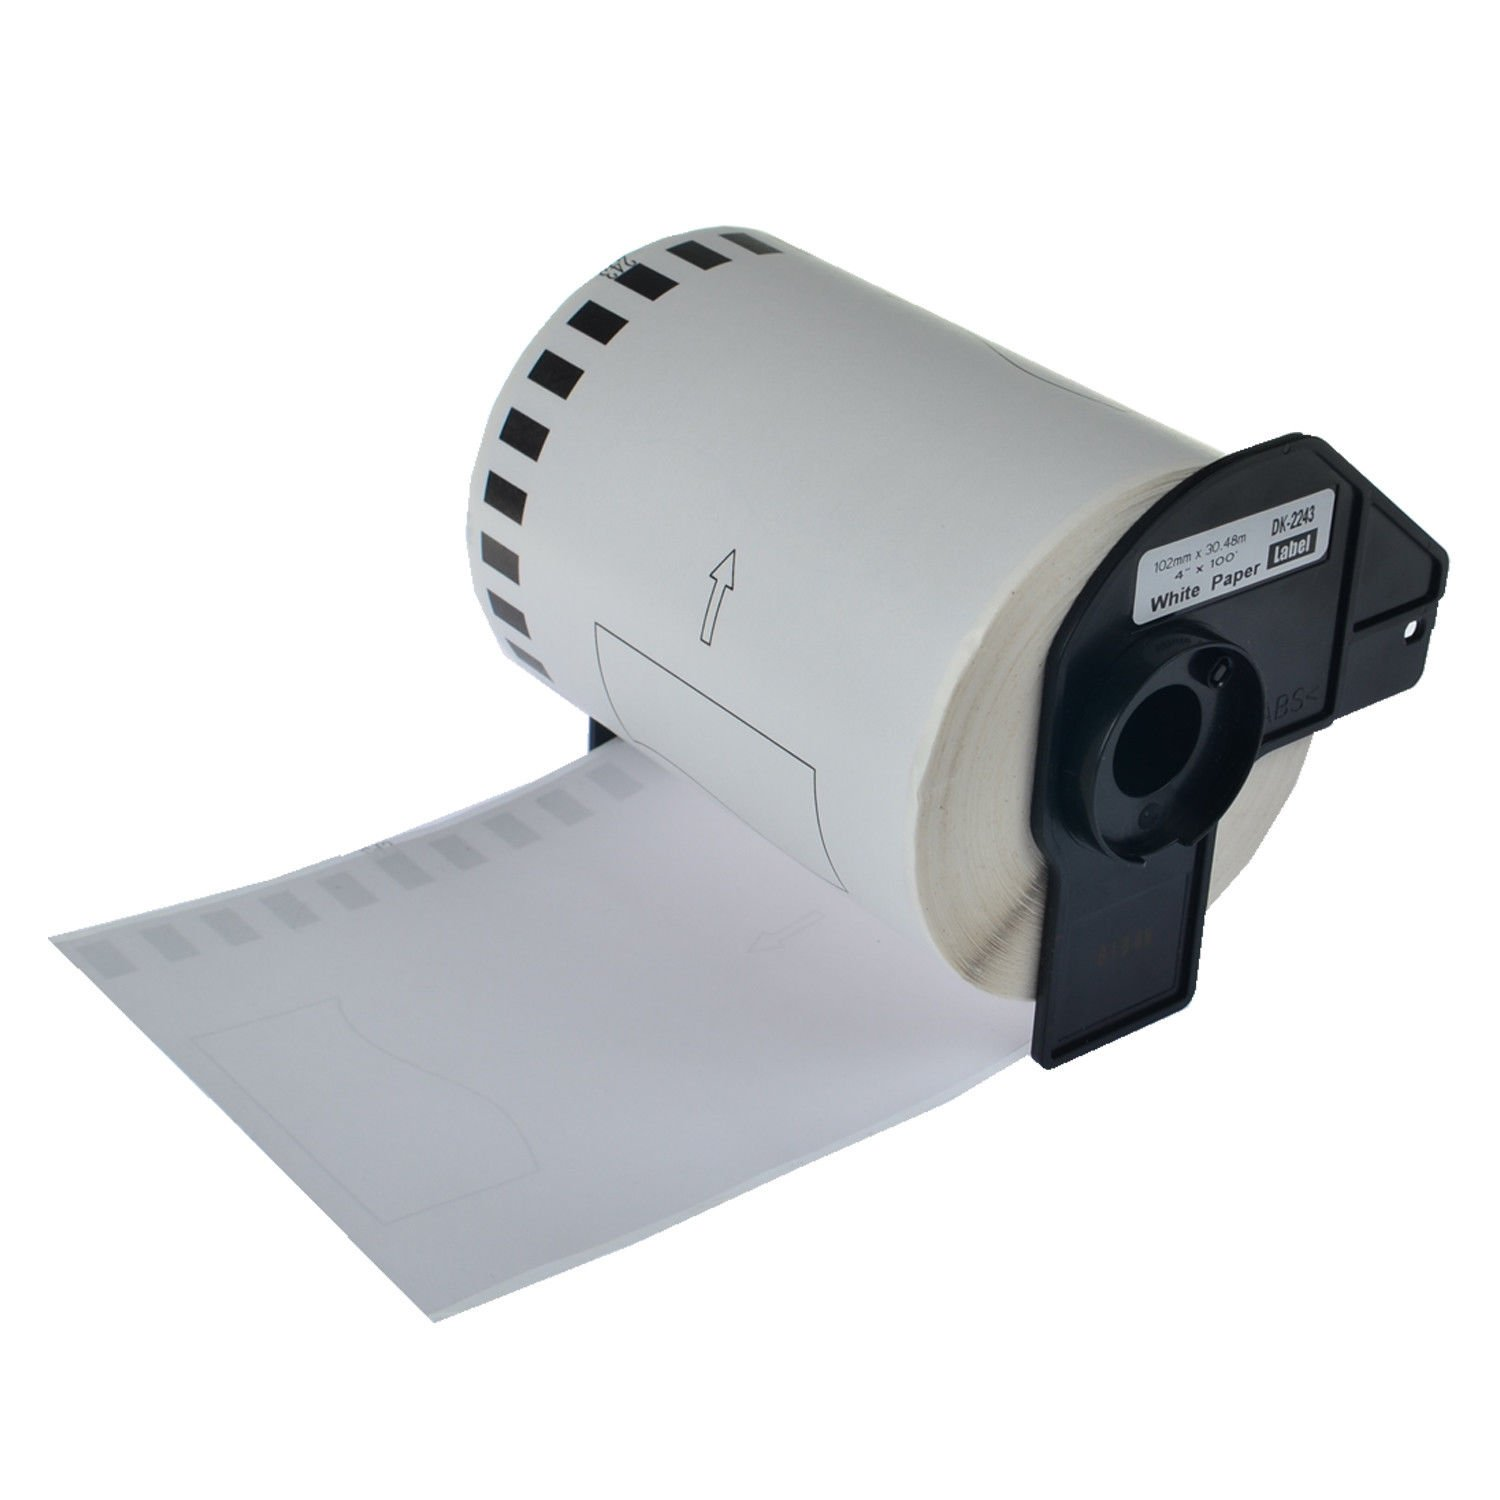 102mm x 30.43m Compatible for Brother QL-1050 QL-1050N QL-1060N QL-1100 QL-1110NWB QL Printers 4 x 100ft GREENCYCLE 5 Rolls Replacement DK2243 DK-2243 Continuous Shipping Label White Paper Tape